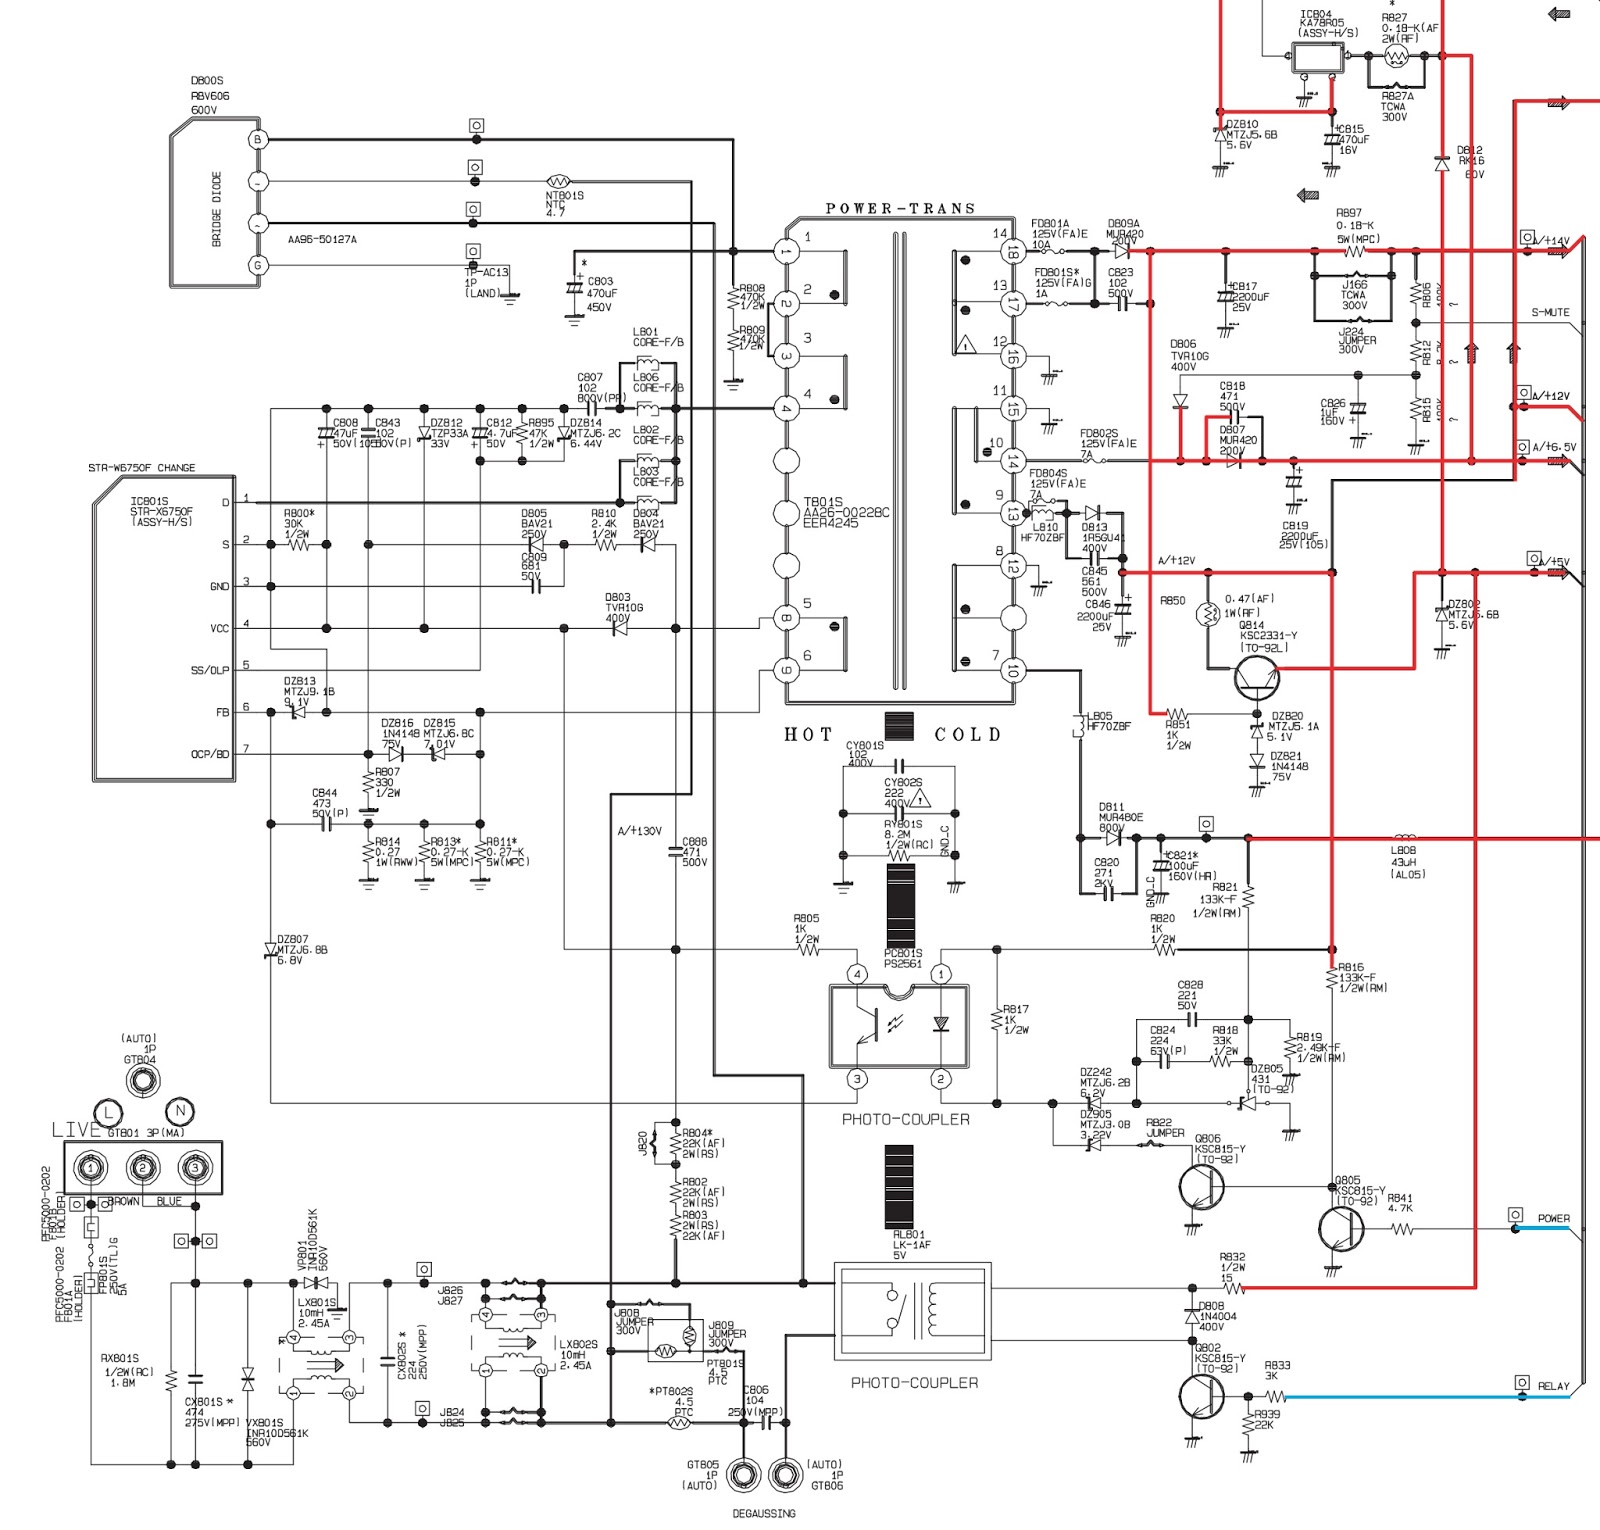 untitled.bmp samsung cl29x50 power supply [smps] schematic [circuit diagram samsung wiring diagram at soozxer.org